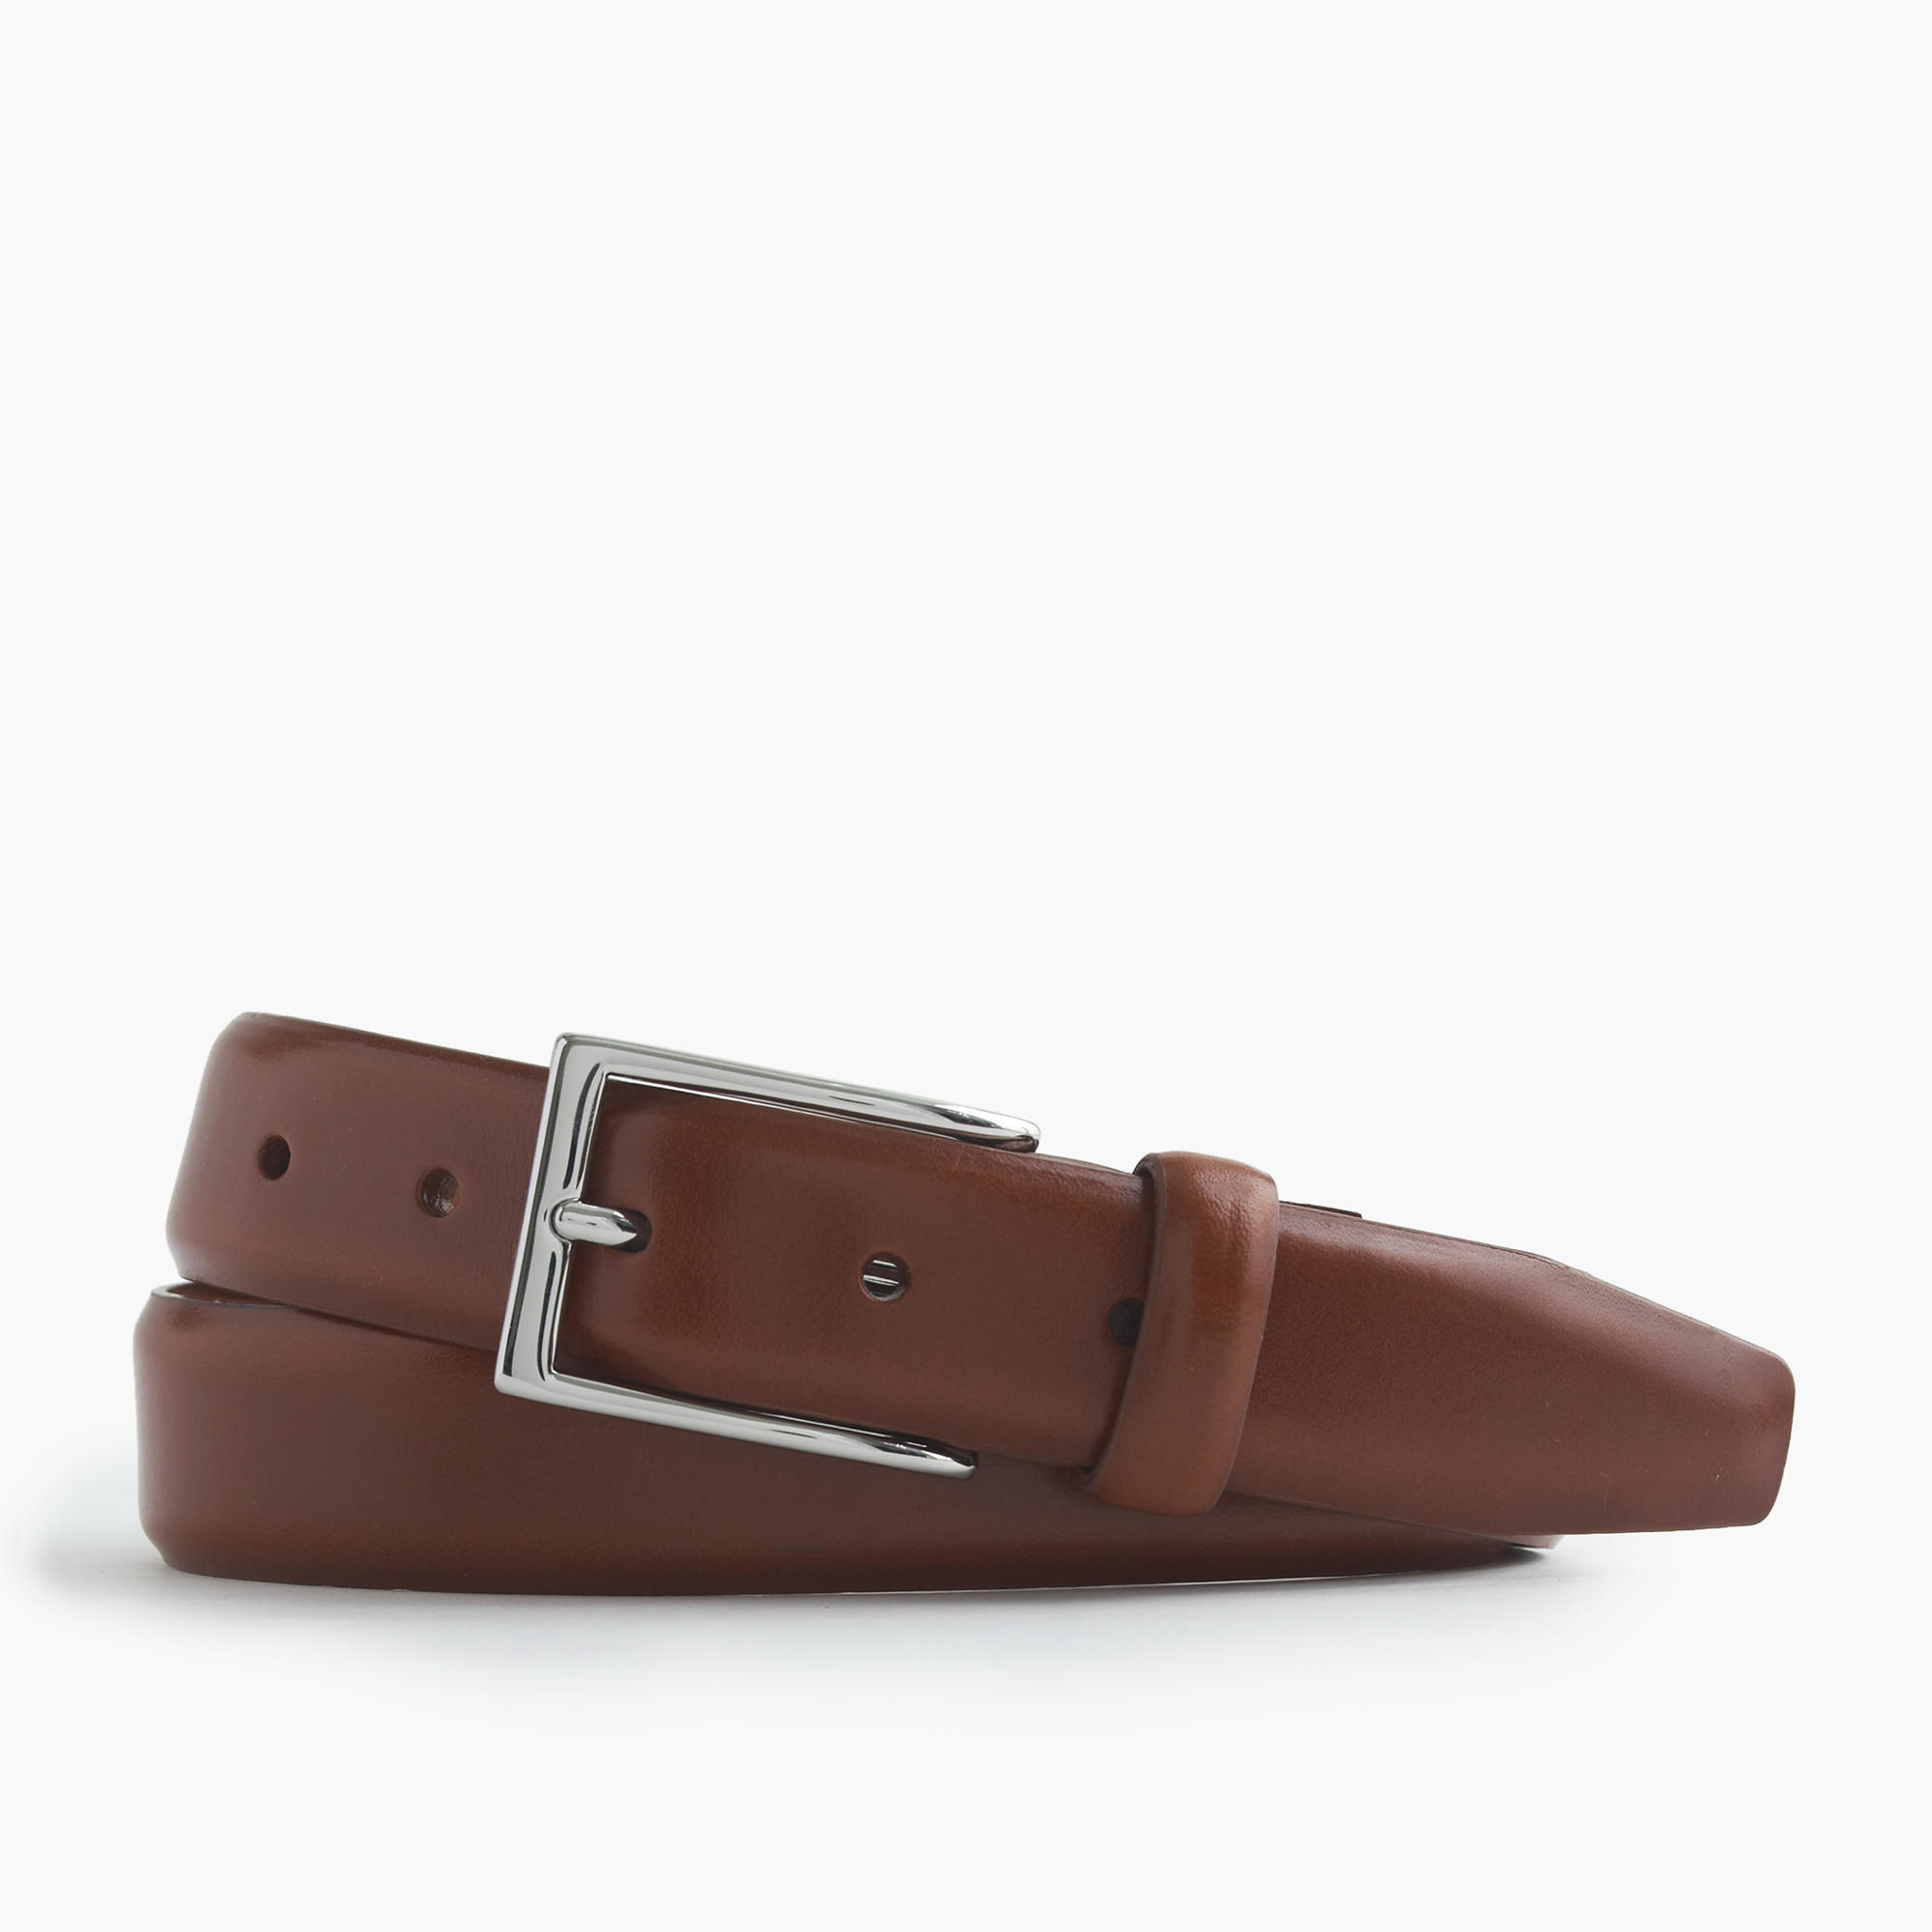 j crew leather dress belt in brown for lyst